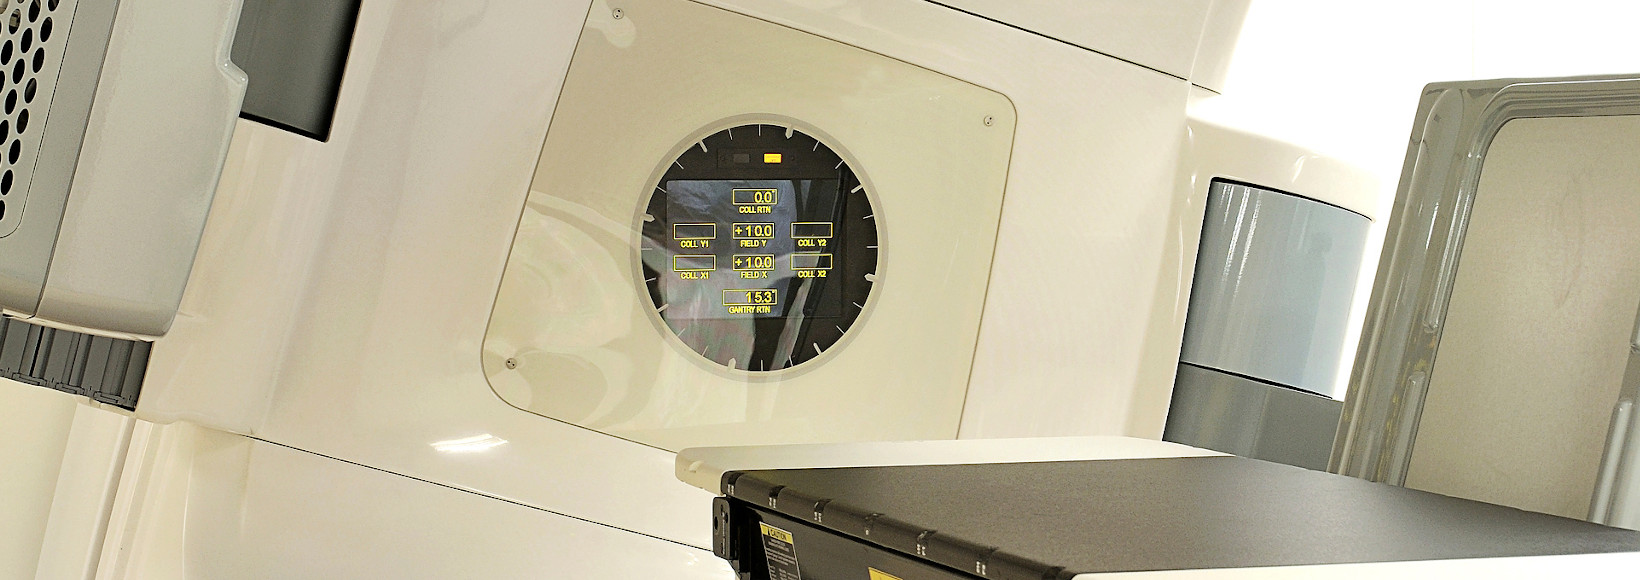 Cancer Radiotherapy Equipment